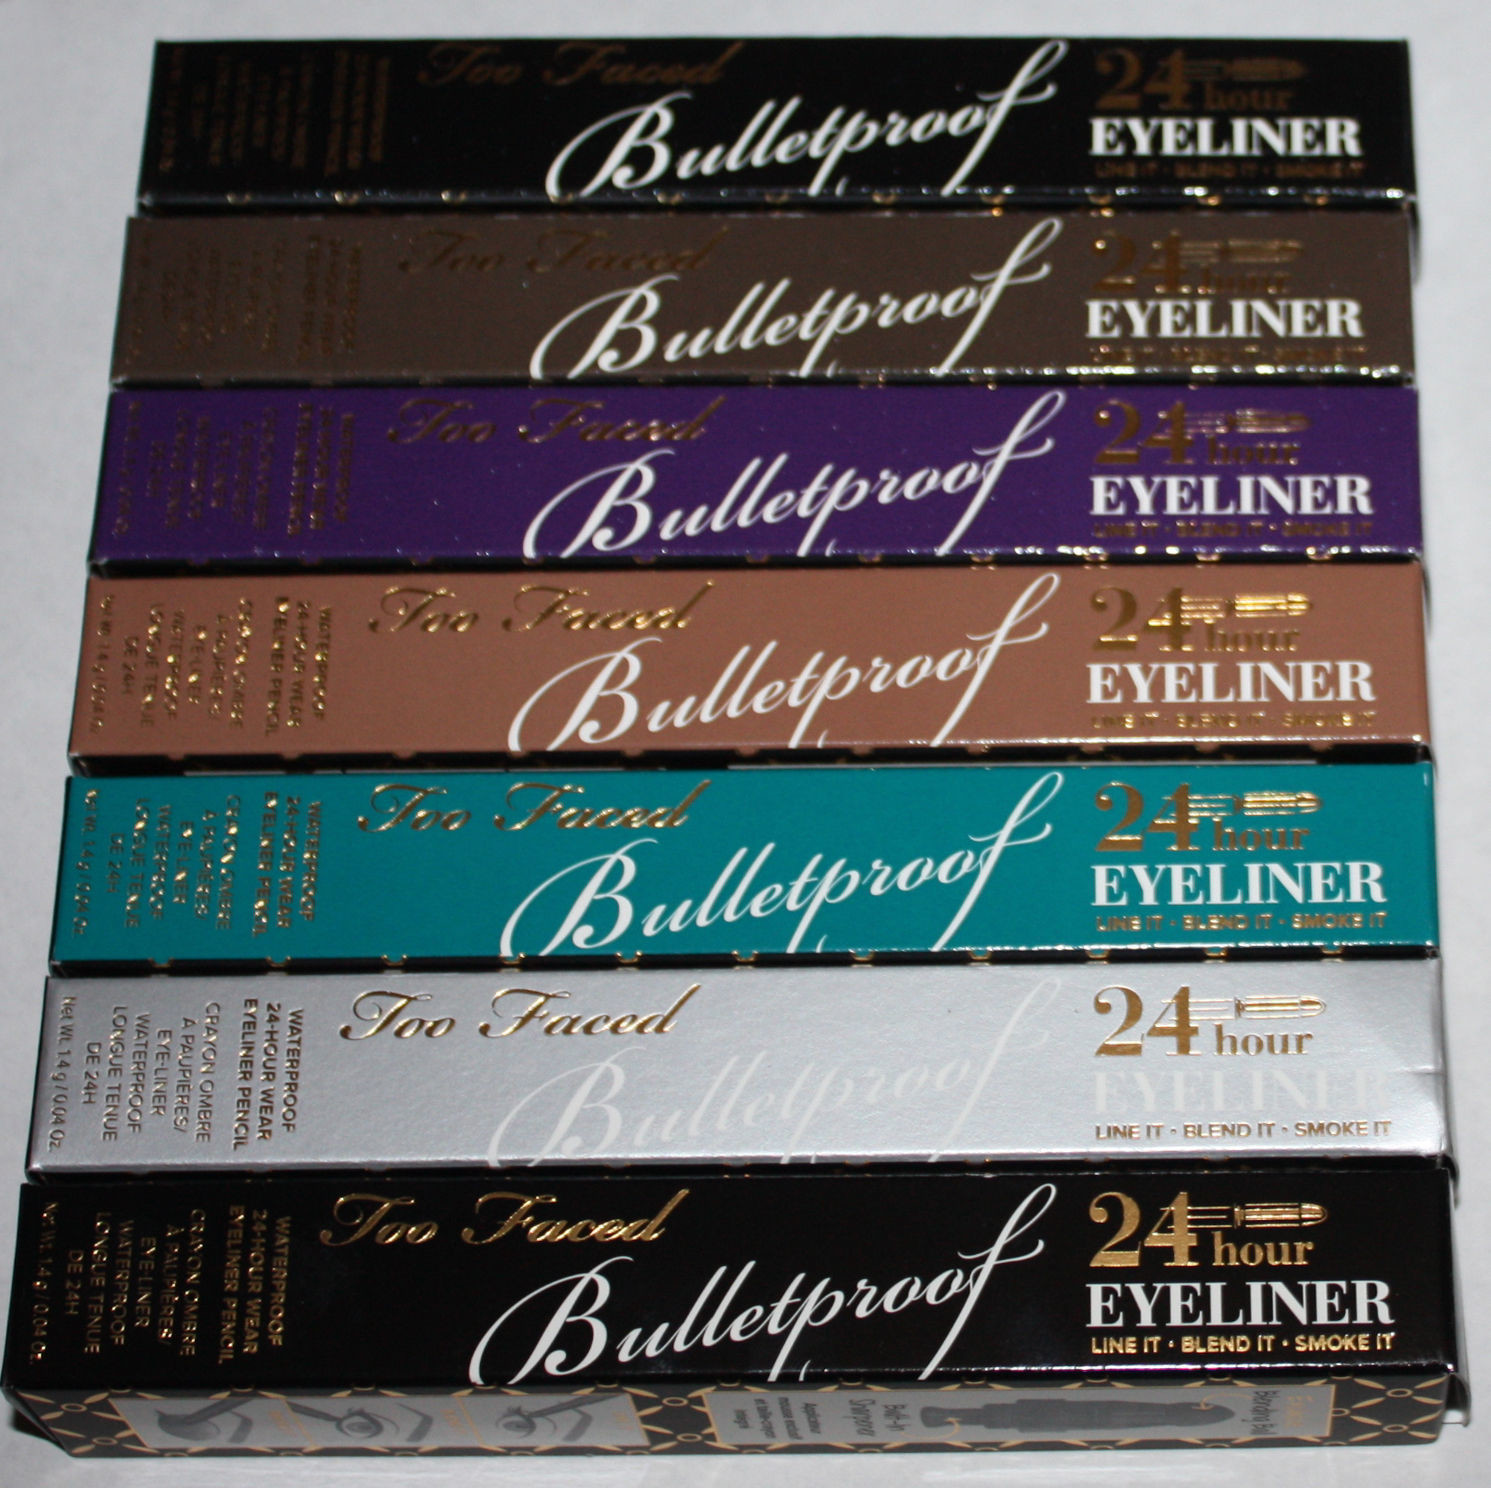 Too Faced Bulletproof Waterproof 24 Hour Eyeliner Pencil 0.04 oz (Several Shades)